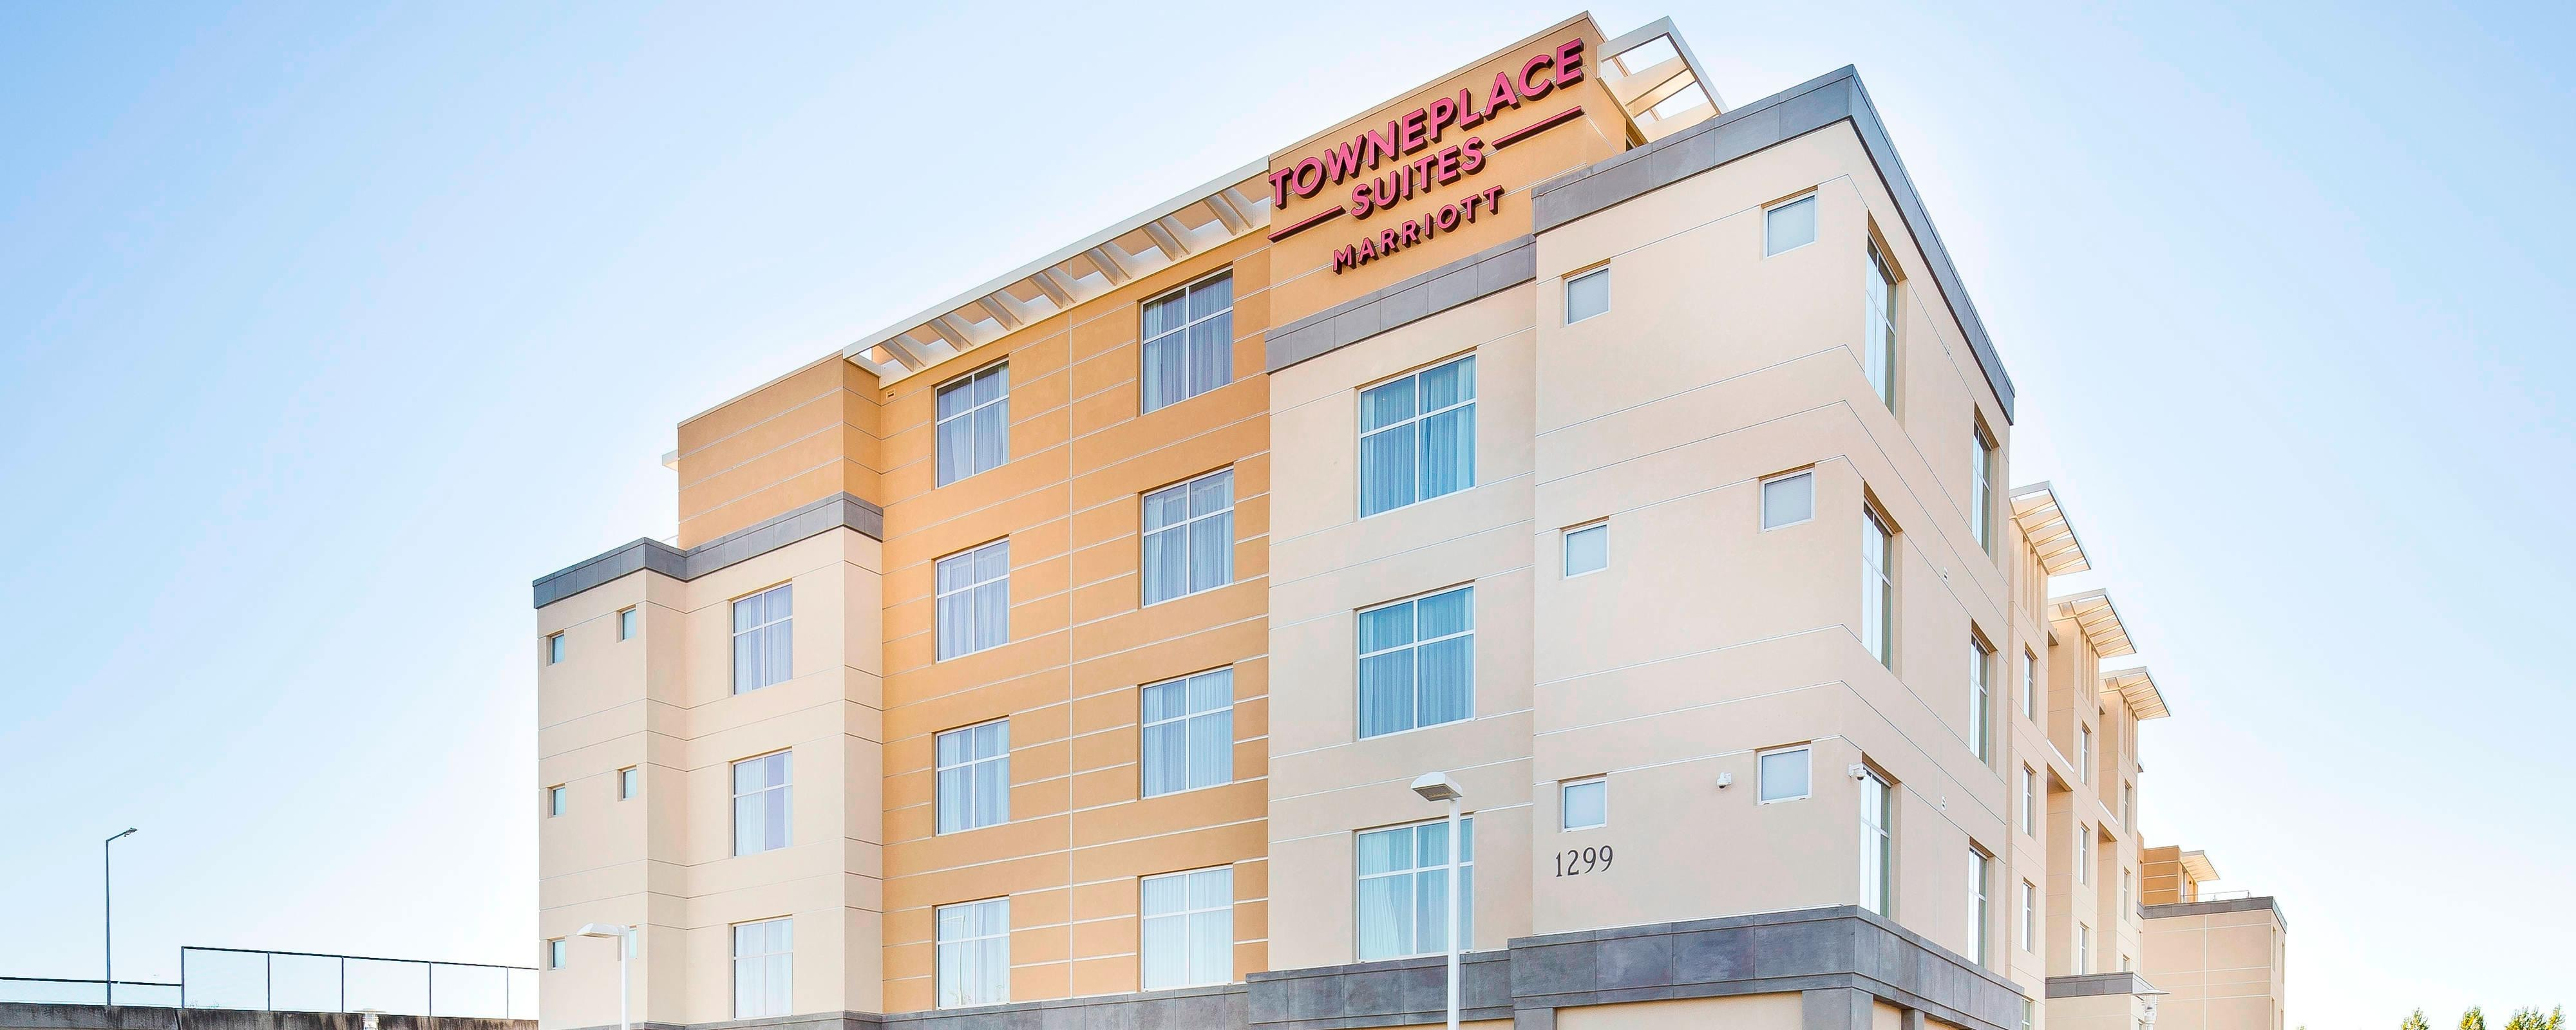 Extended Stay Hotel In Foster City Ca Towneplace Suites